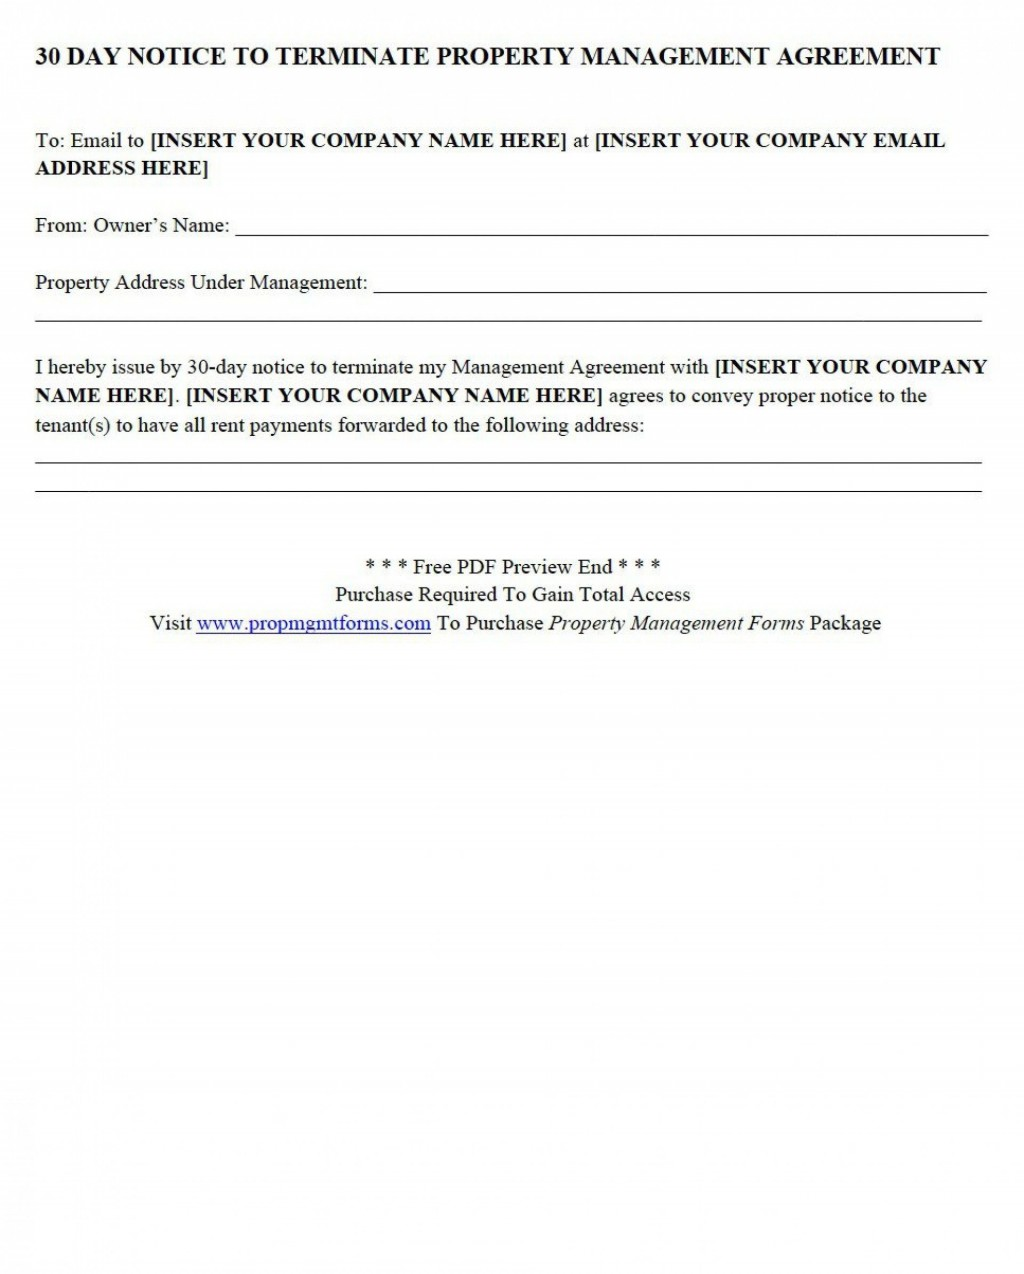 000 Stupendou Property Management Contract Template Ontario Image Large